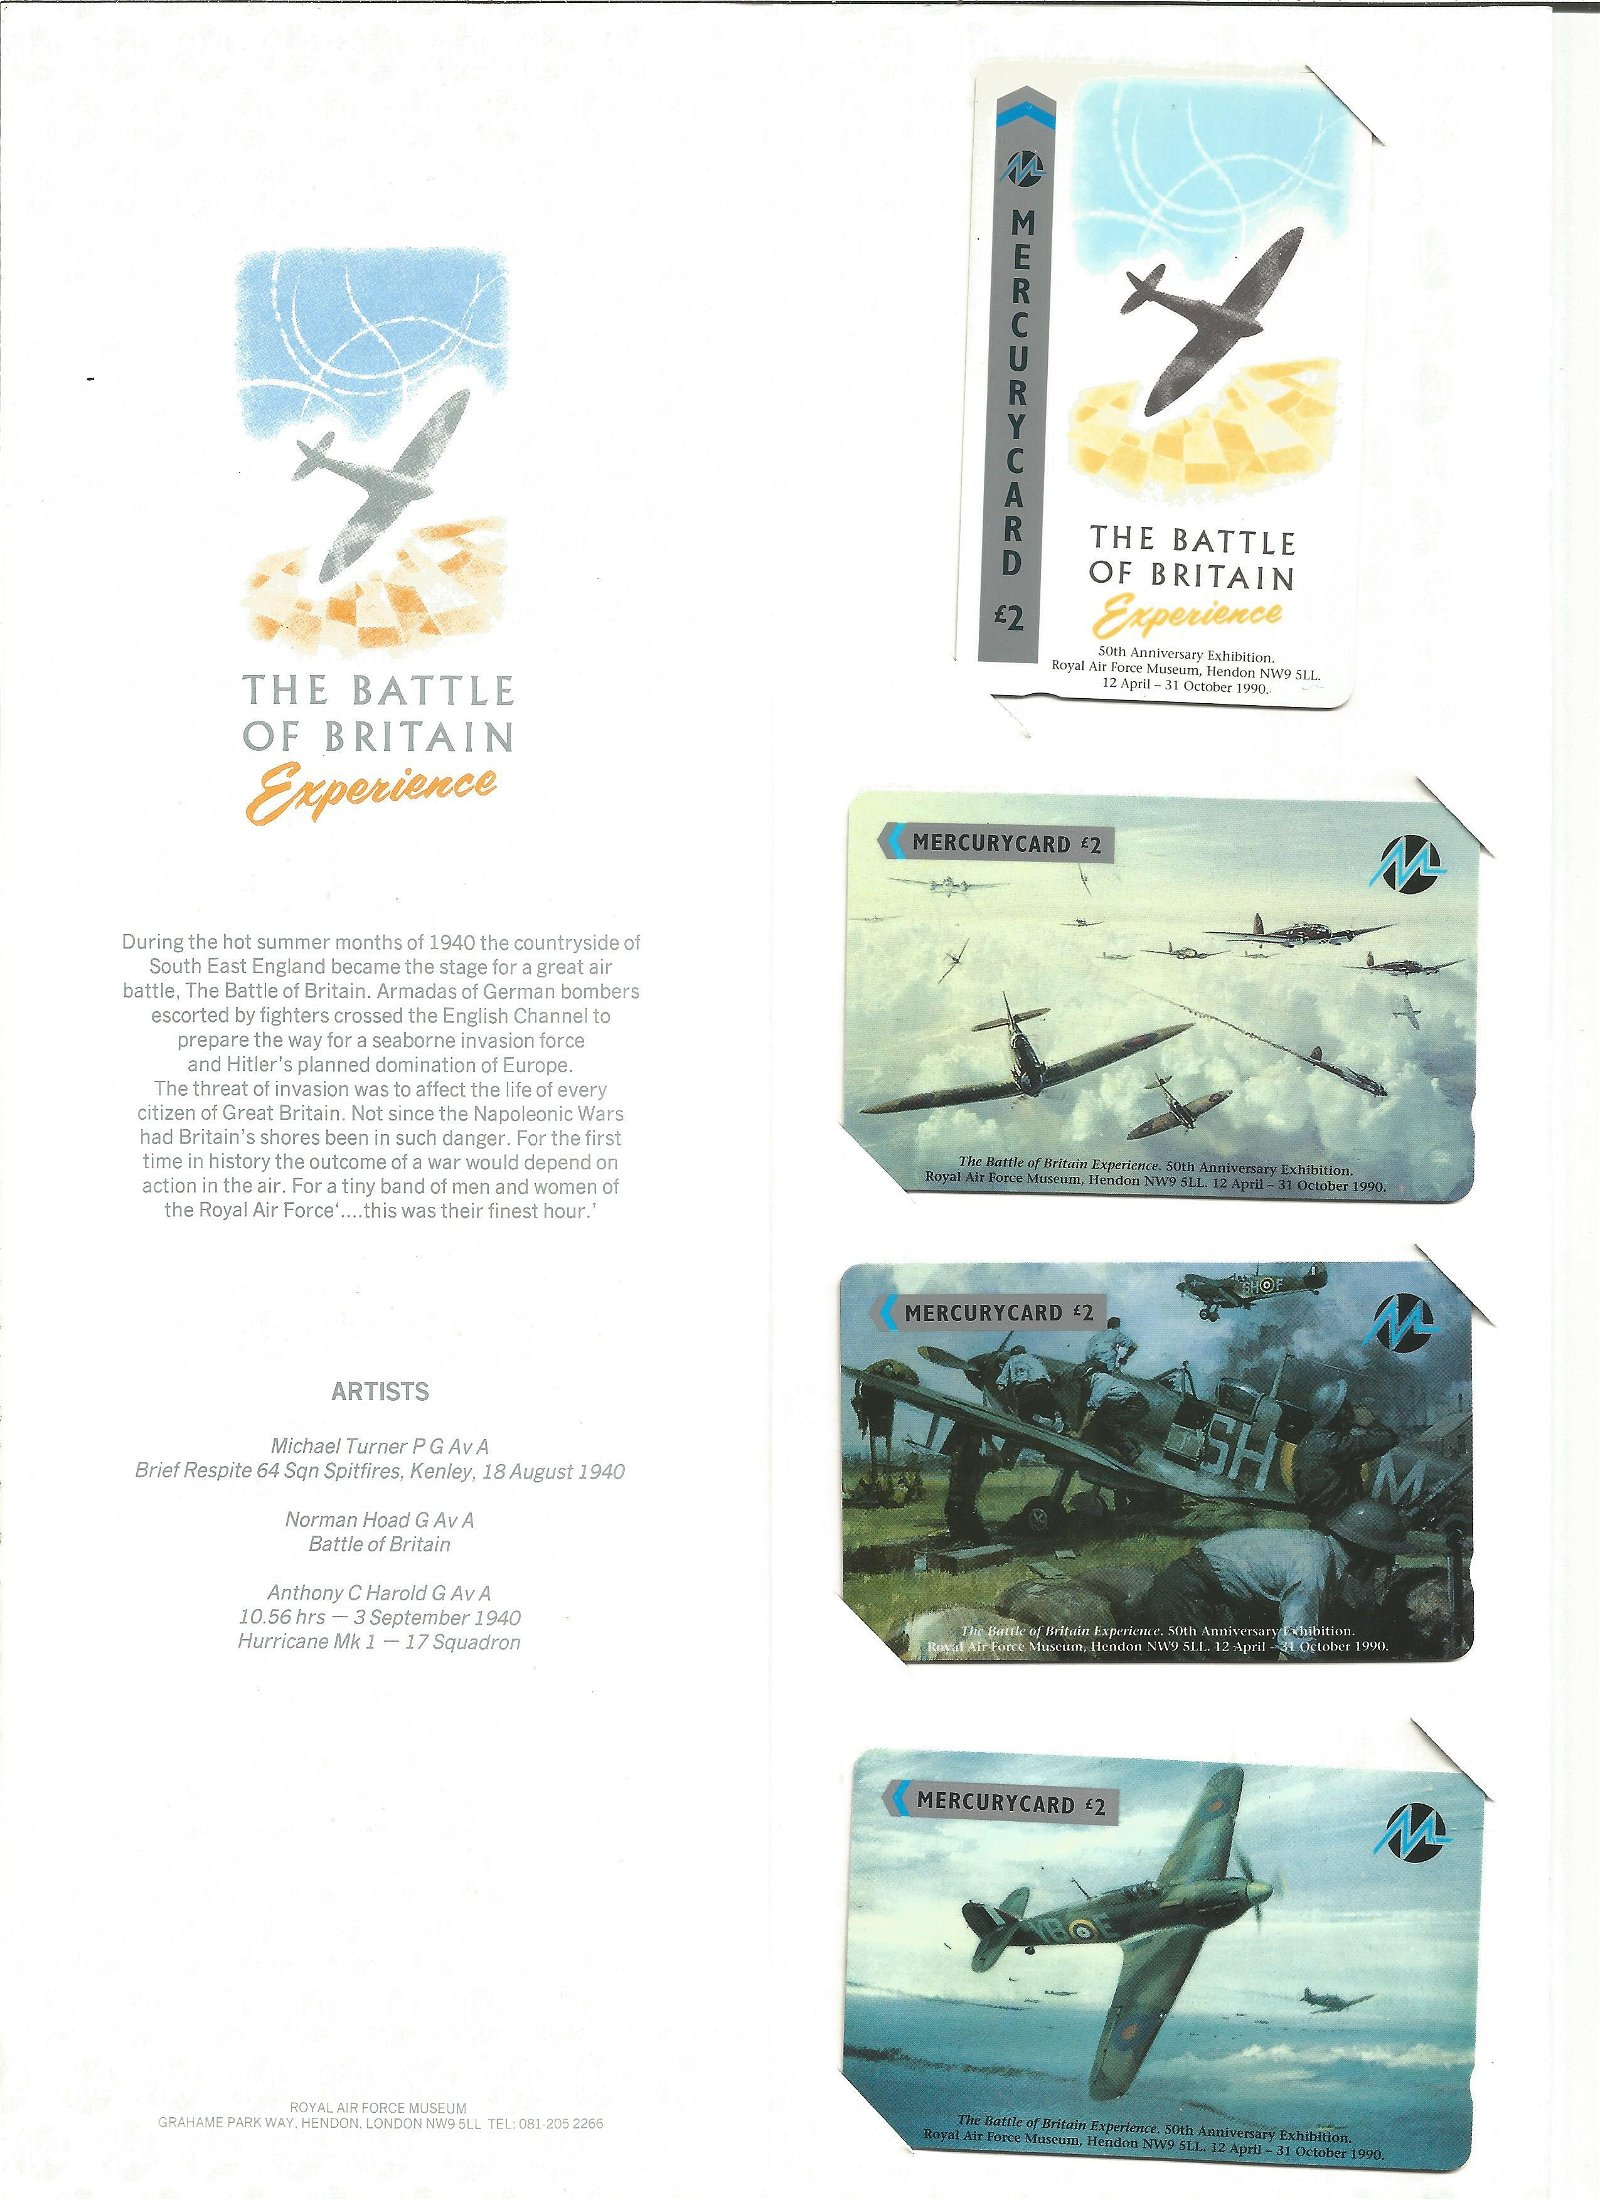 Battle of Britain experience phonecards in presentation